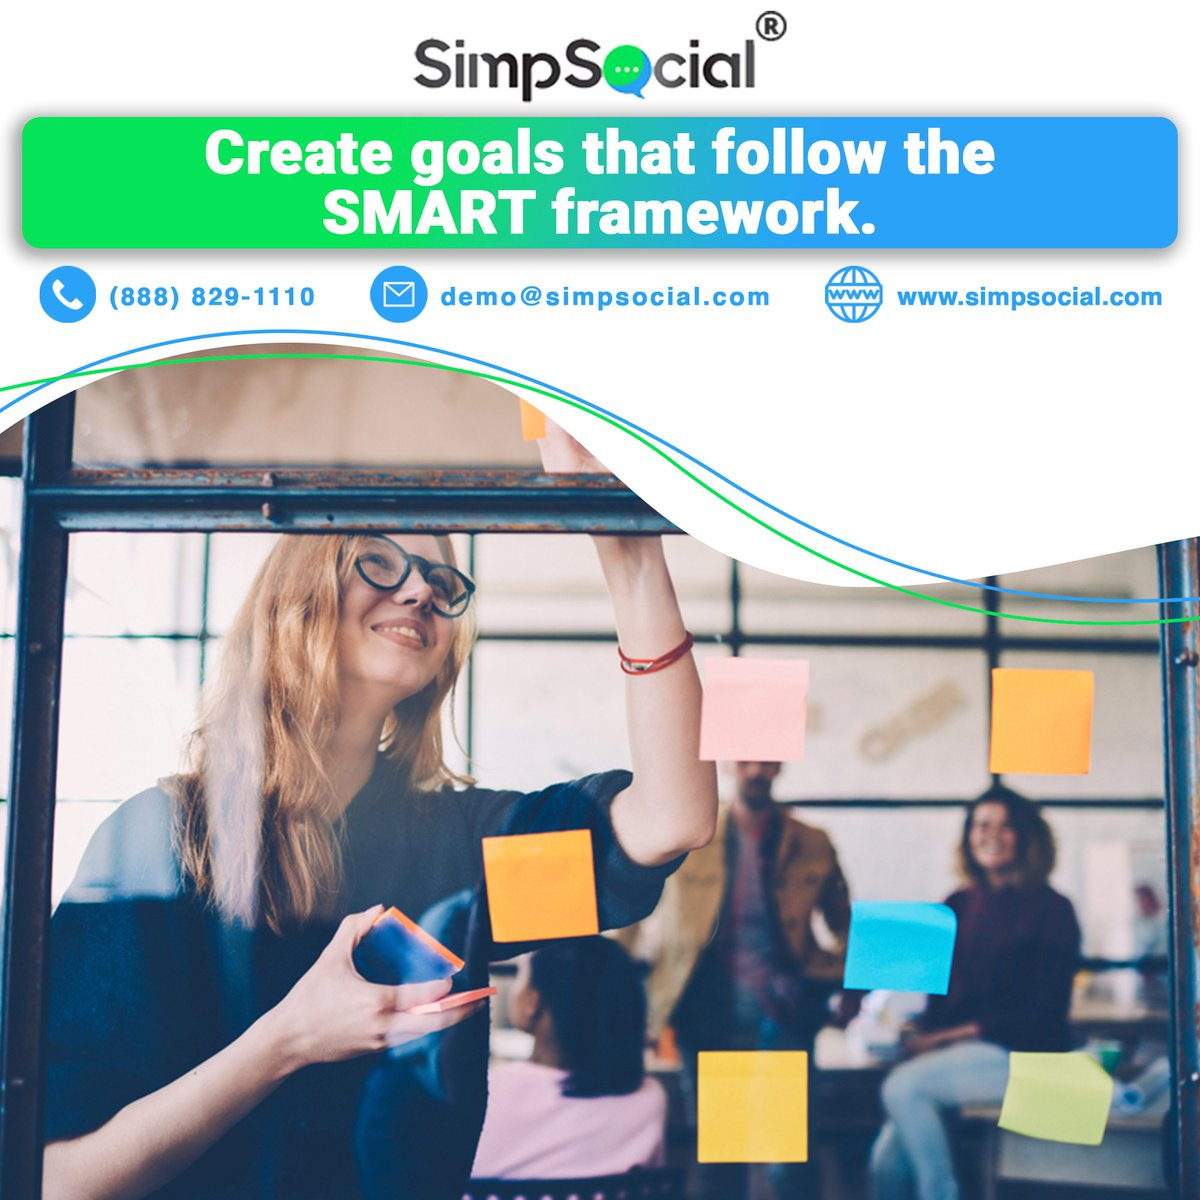 Creating a goal and following the SMART framework is a quick path to success!  💻  📞(888) 829-1110  #leadgeneration #marketing #digitalmarketing #socialmediamarketing #cardealer #car #businesstips #socialCRM #clients #carguys #SMSleads